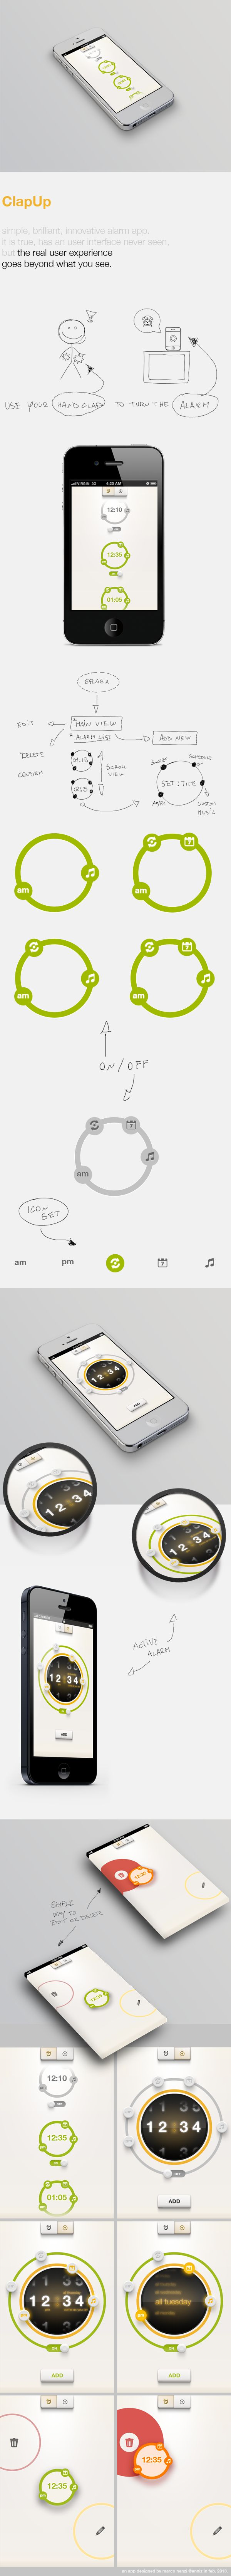 ClapUp - iOS simple and brillant alarm's App | Designer: Marco Nenzi